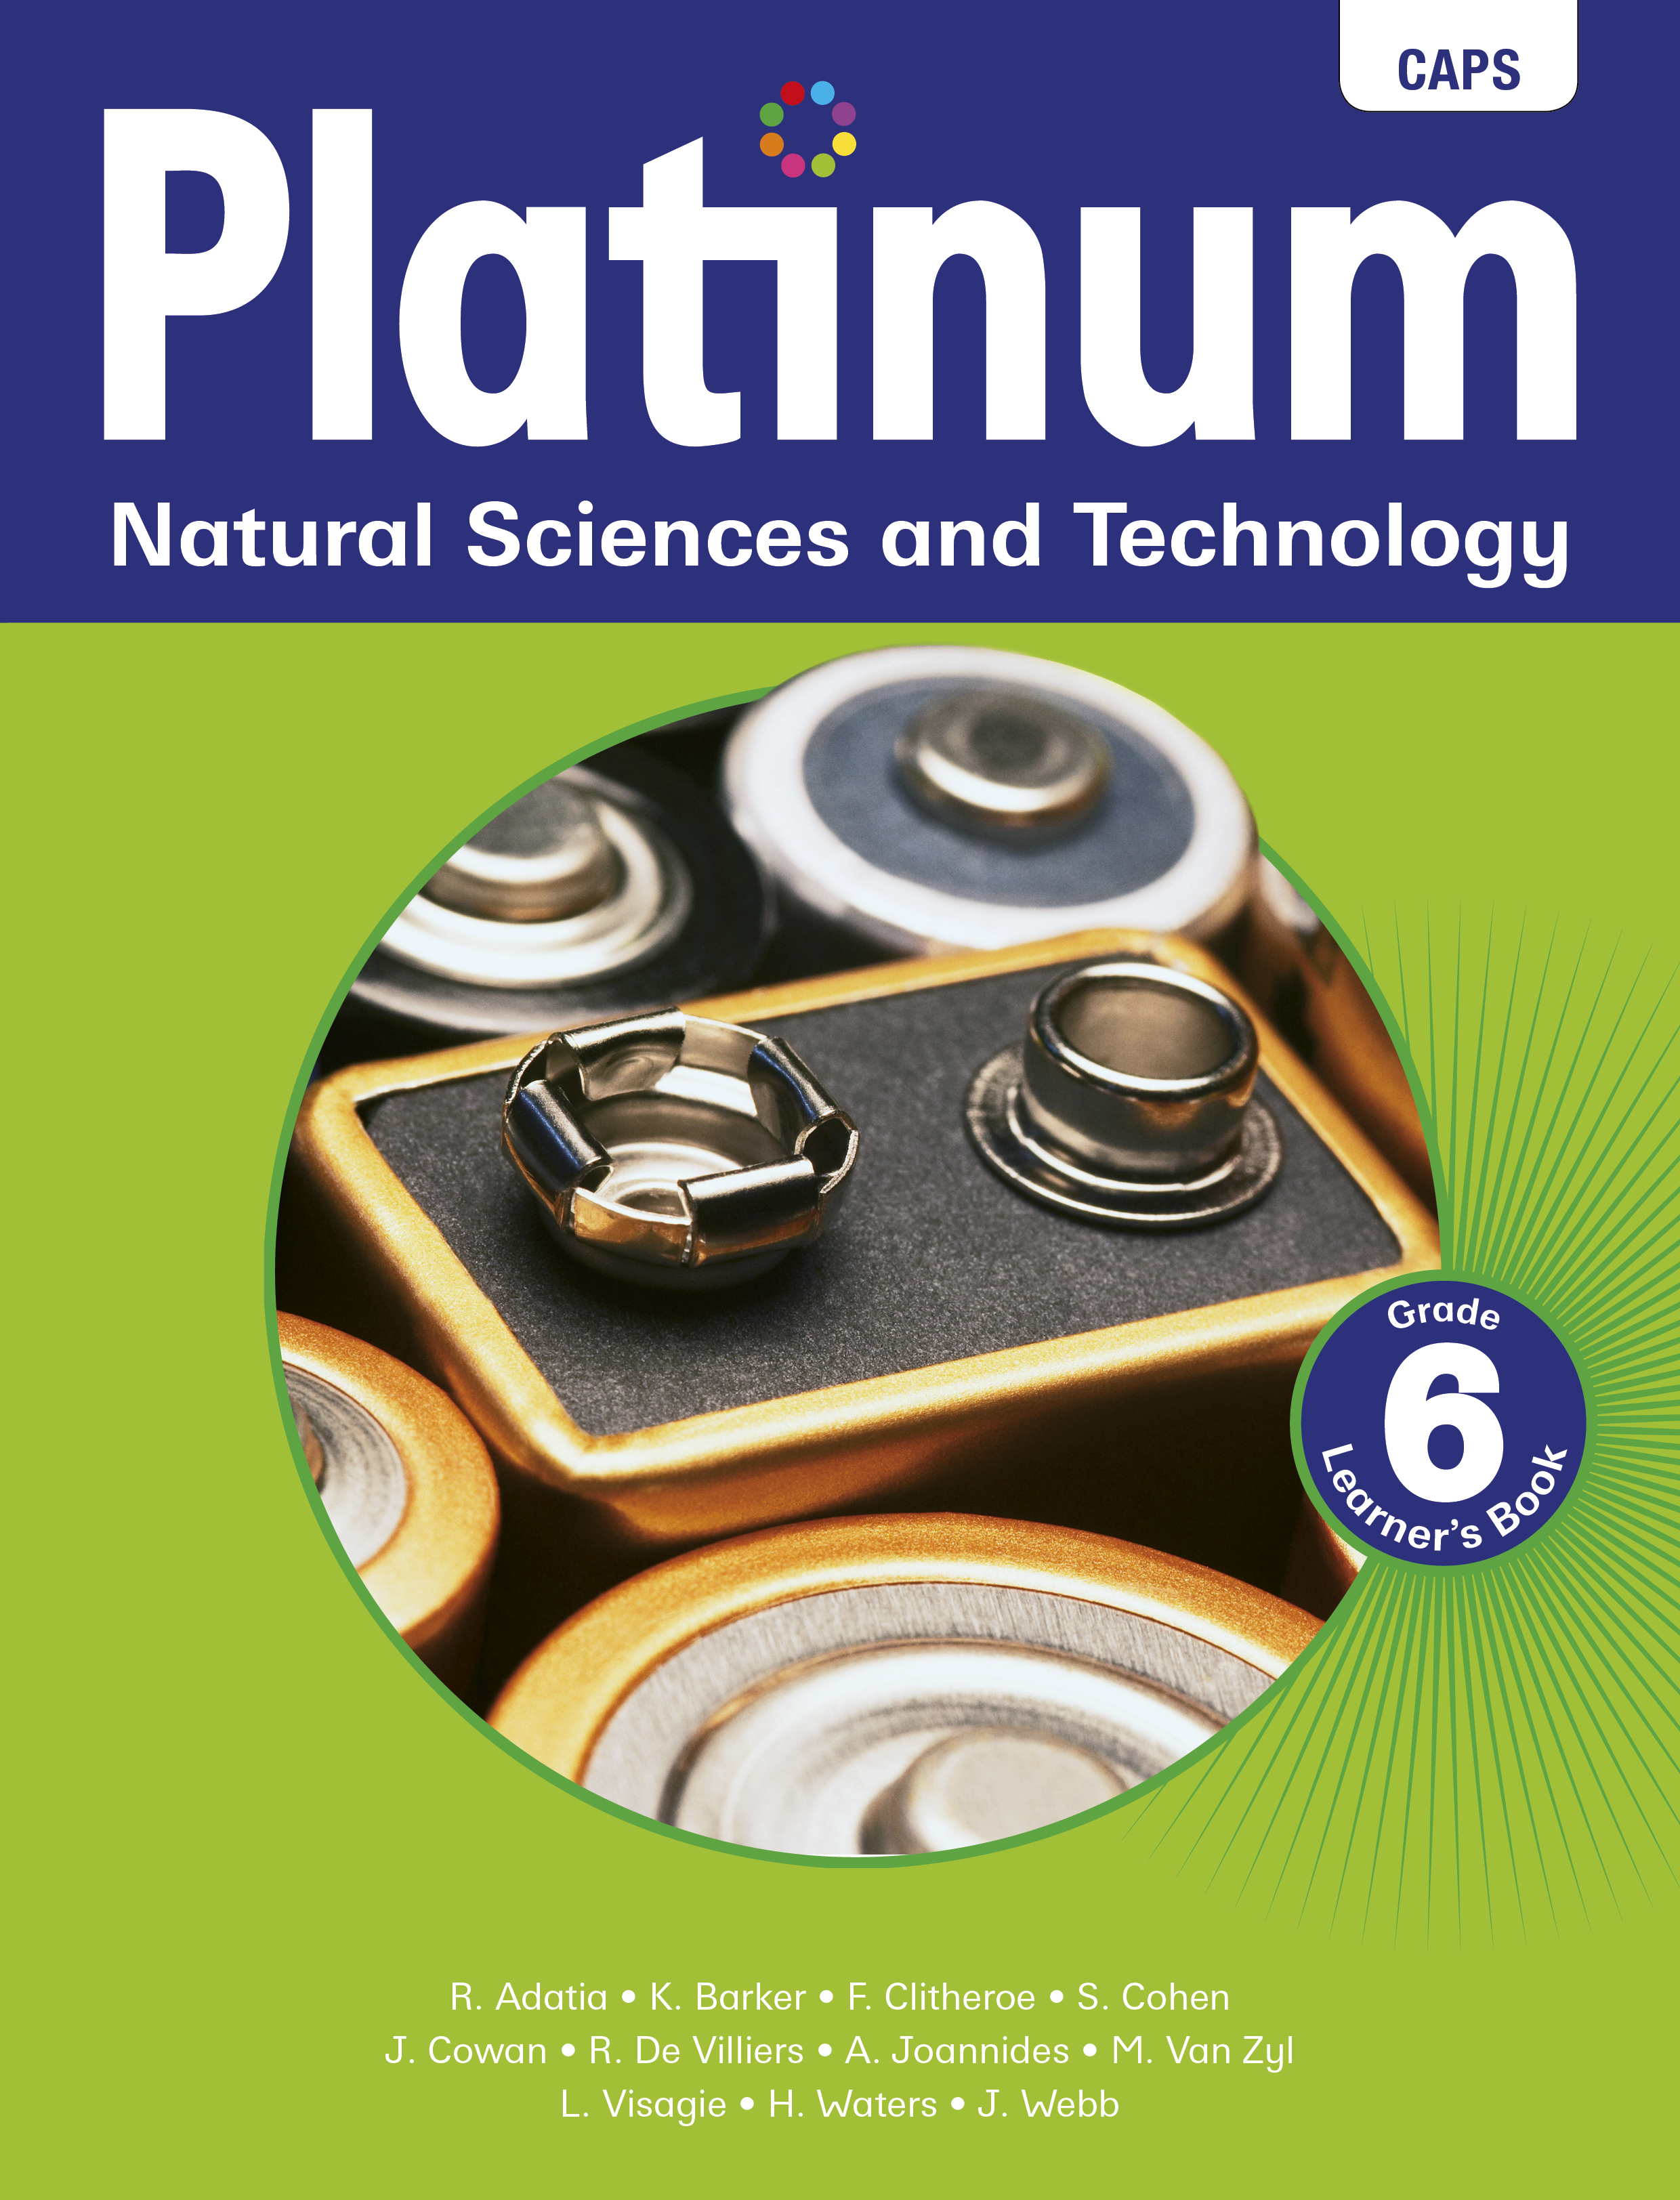 Picture of Platinum Natural Sciences and Technology CAPS: Platinum natural sciences and technology: Grade 6: Learner's book Gr 6: Learner's Book